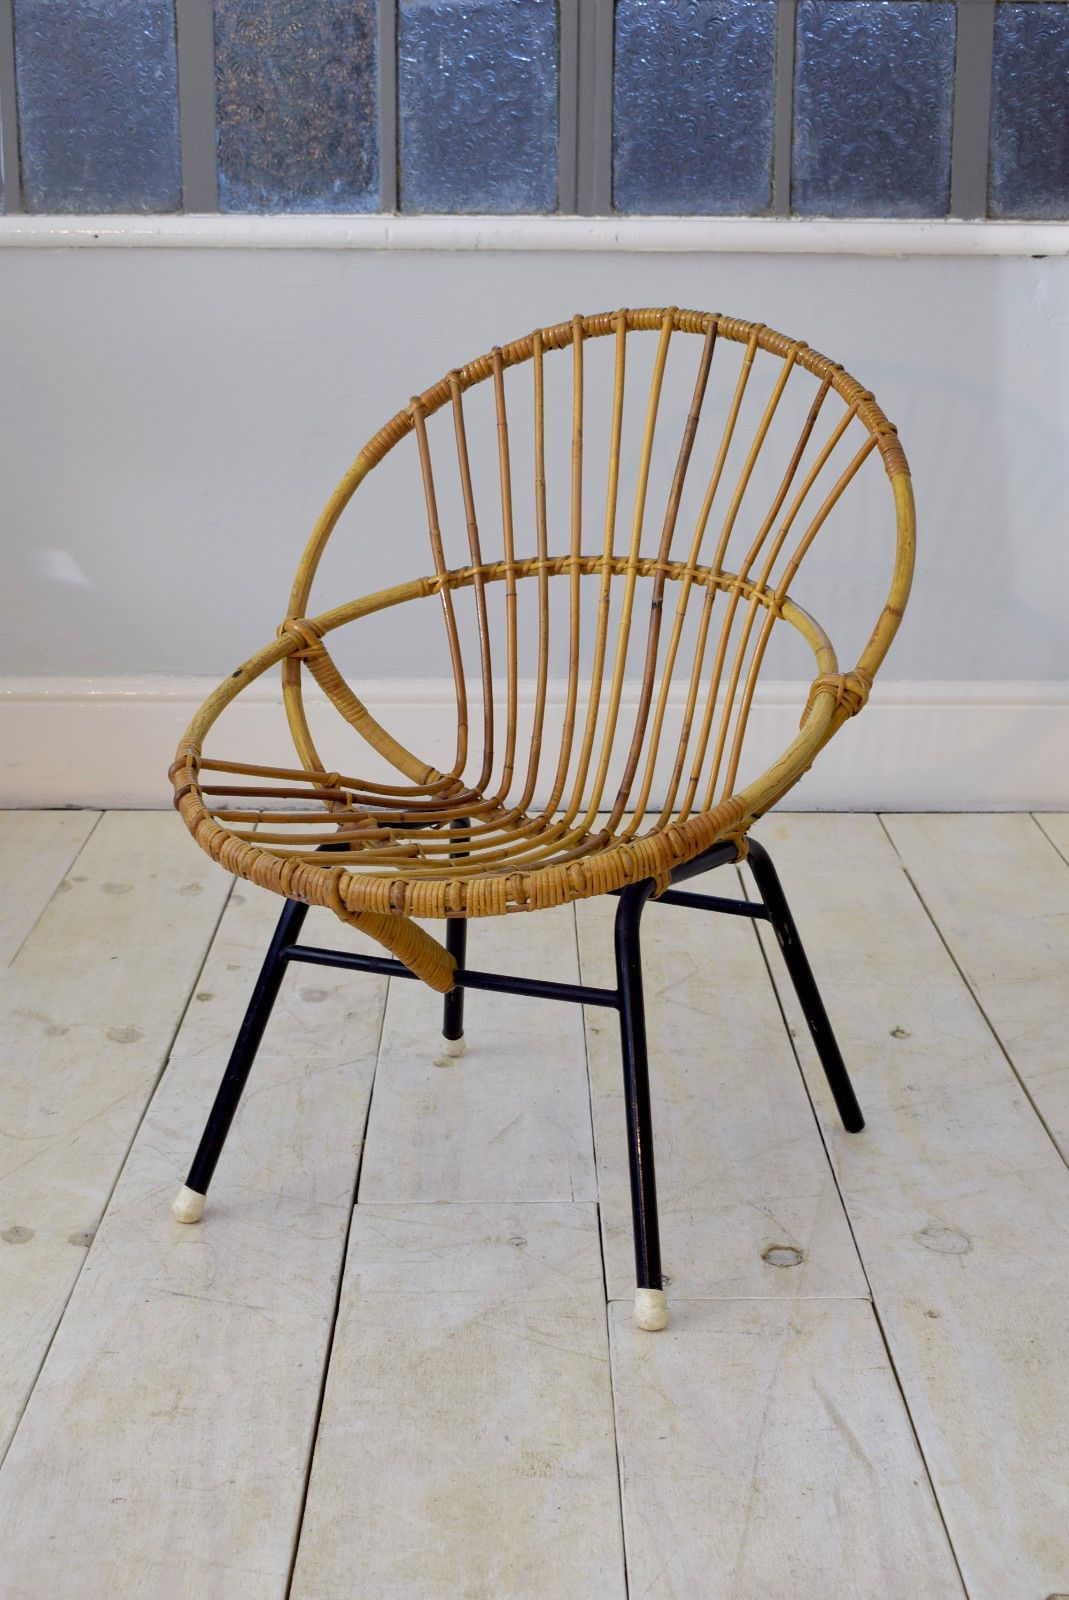 A Stylish Mid Century Wicker Chair With Round Circular Design